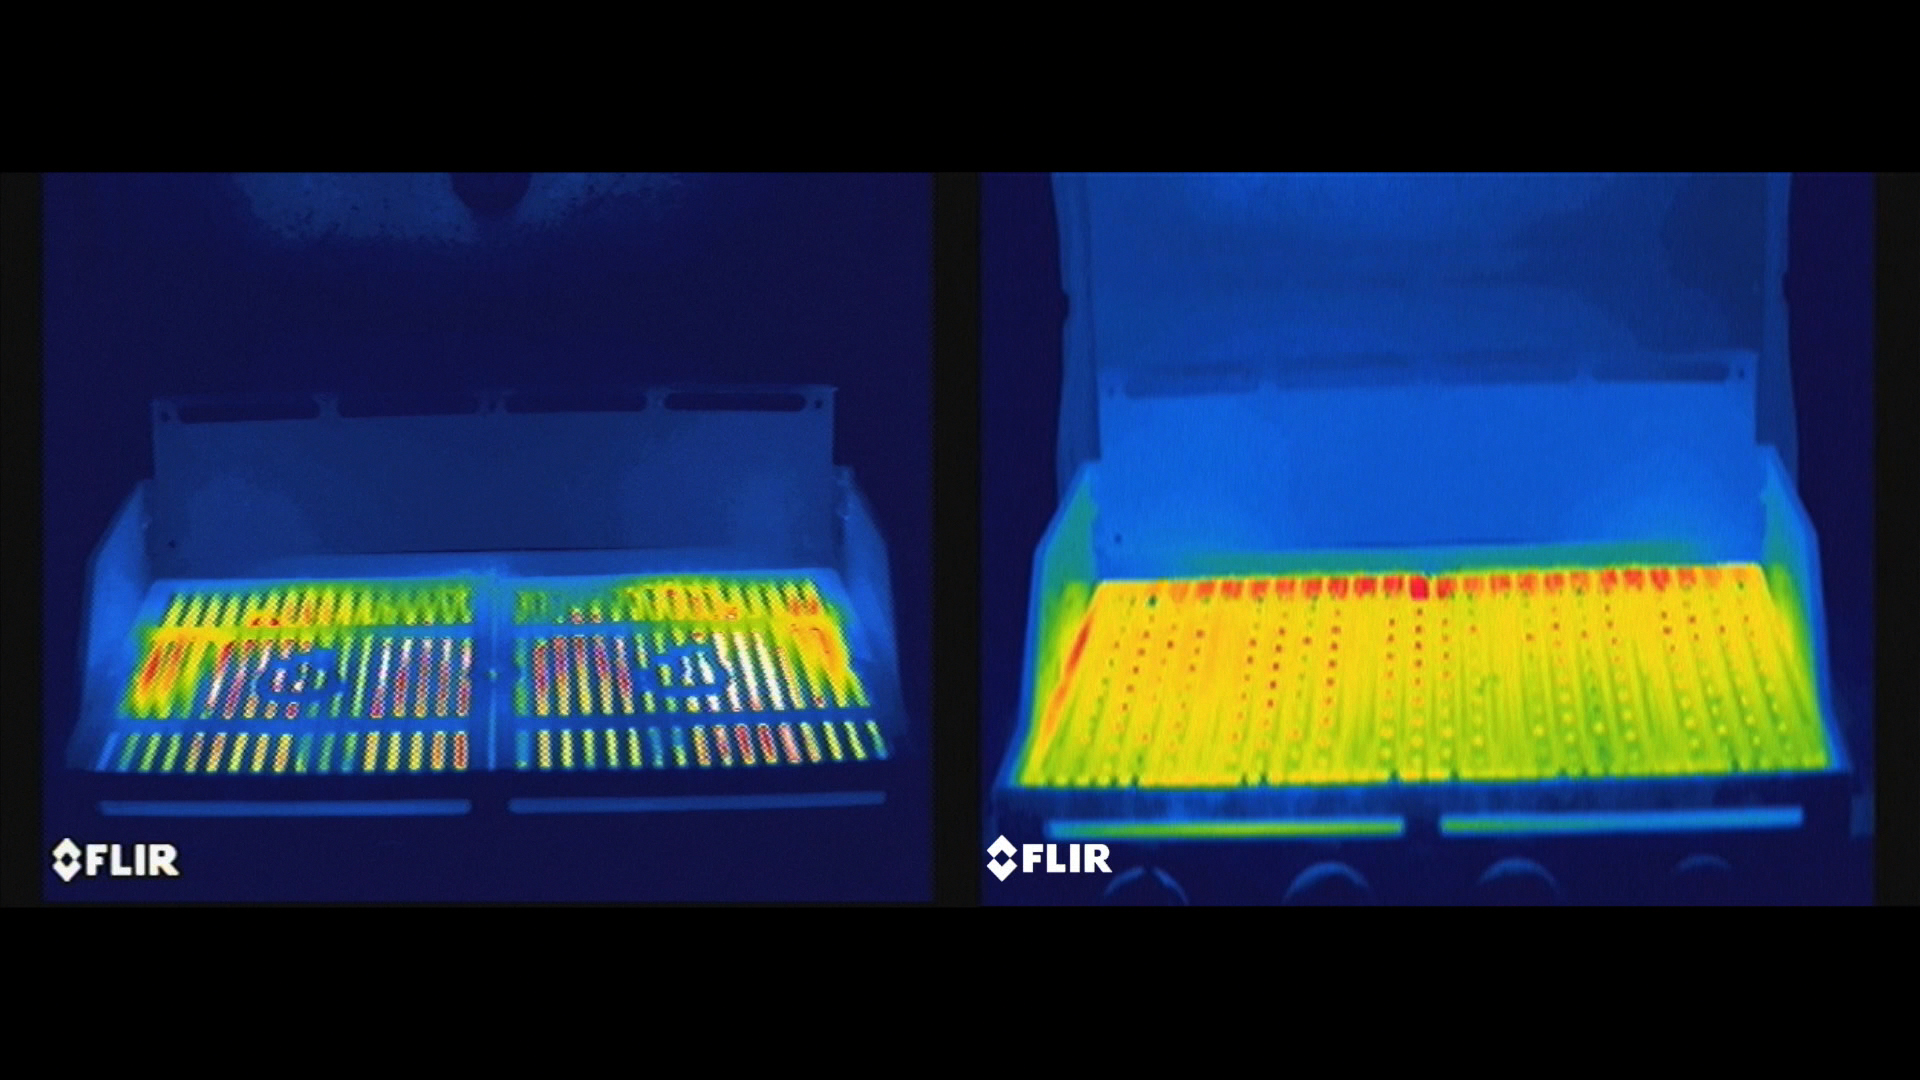 Grillgrate Llc Completes Infrared Study Using Flir Systems